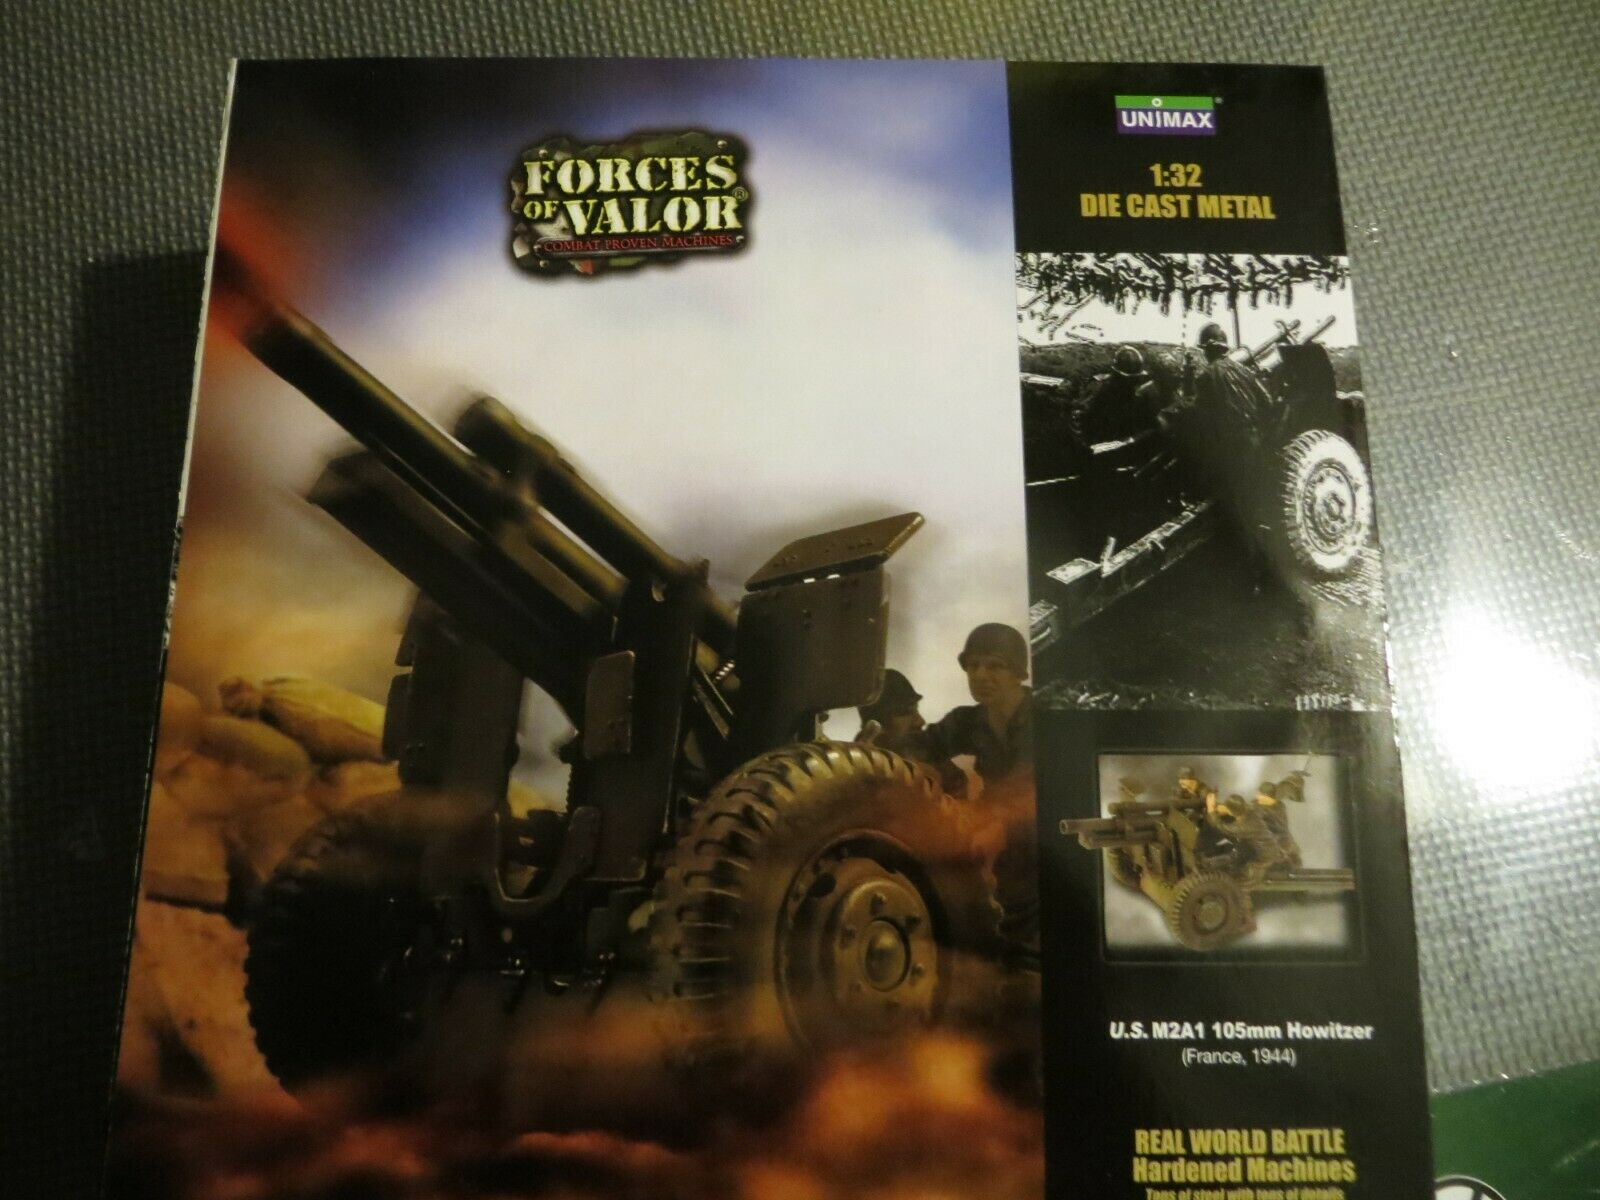 Forces OF VALOR US M2A1 105MM OBICE FRANCIA 1944 132 DIE CAST NUOVO IN SCATOLA